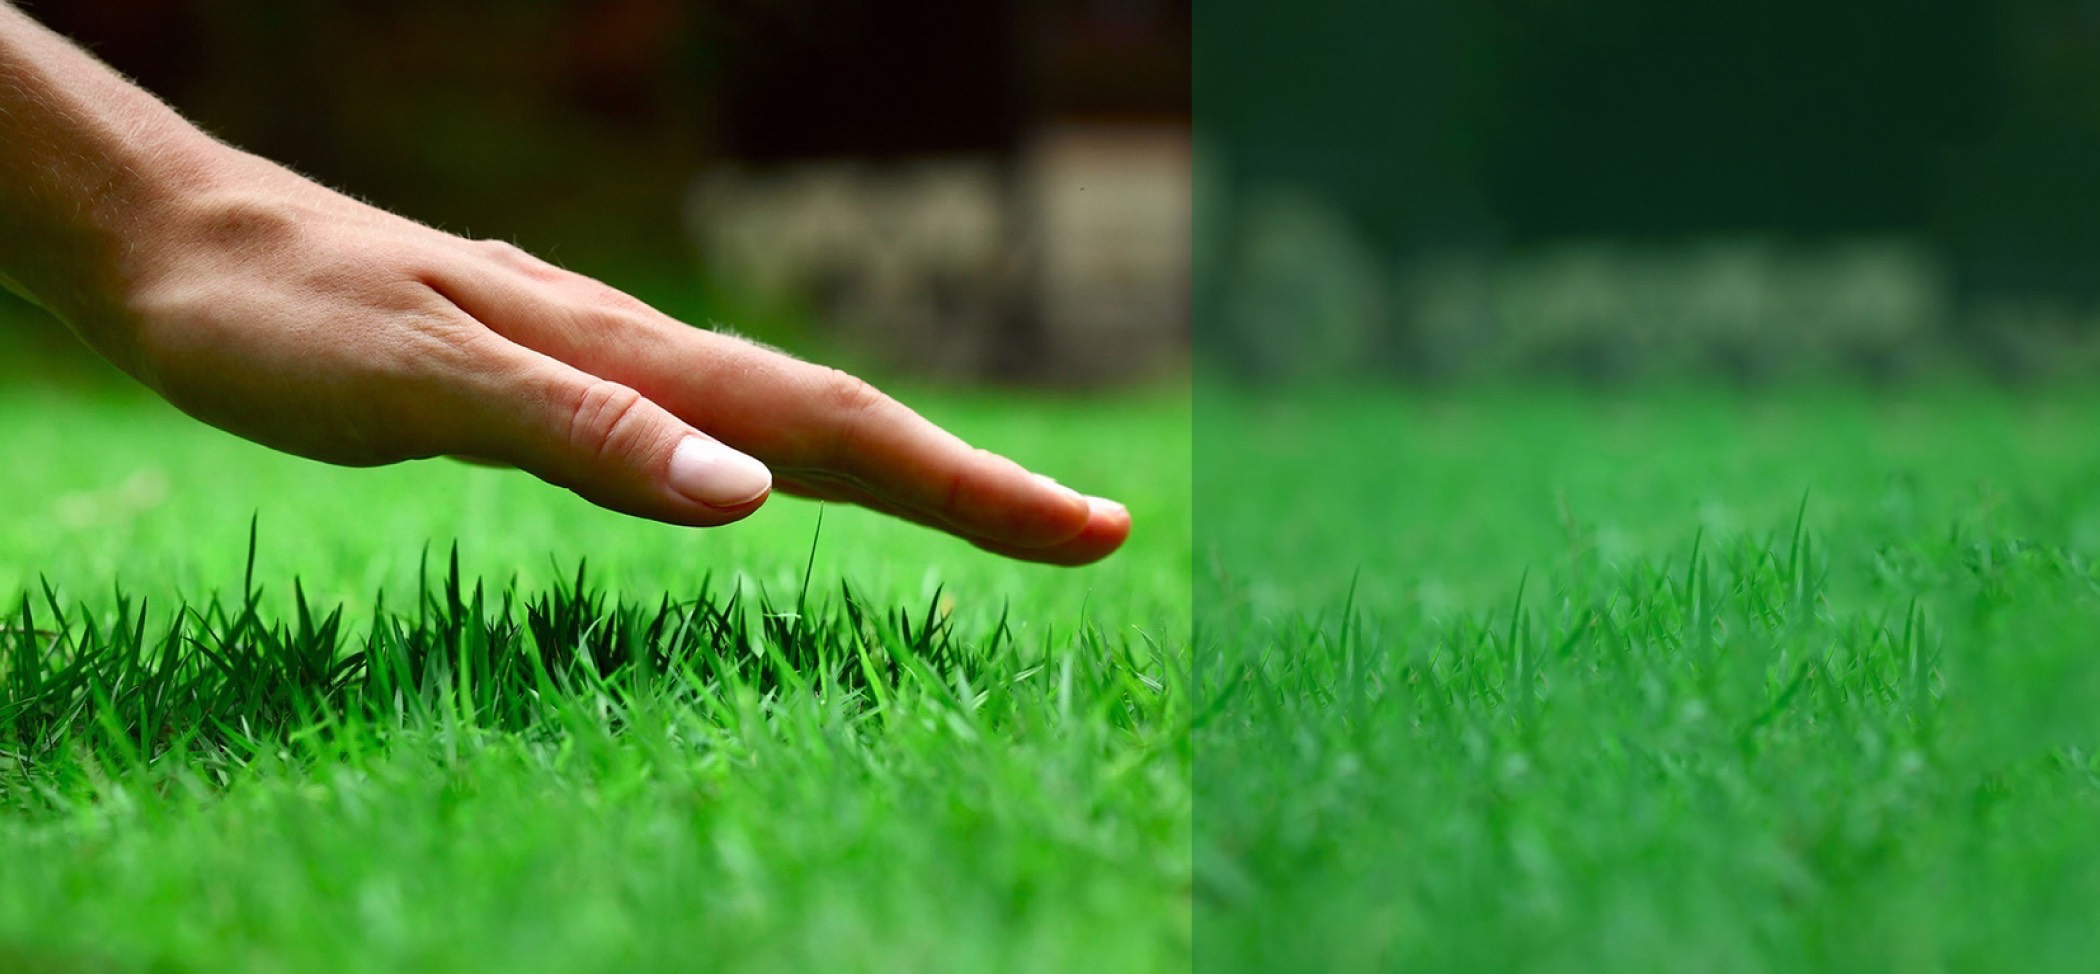 hand almost touching short grass on a lawn